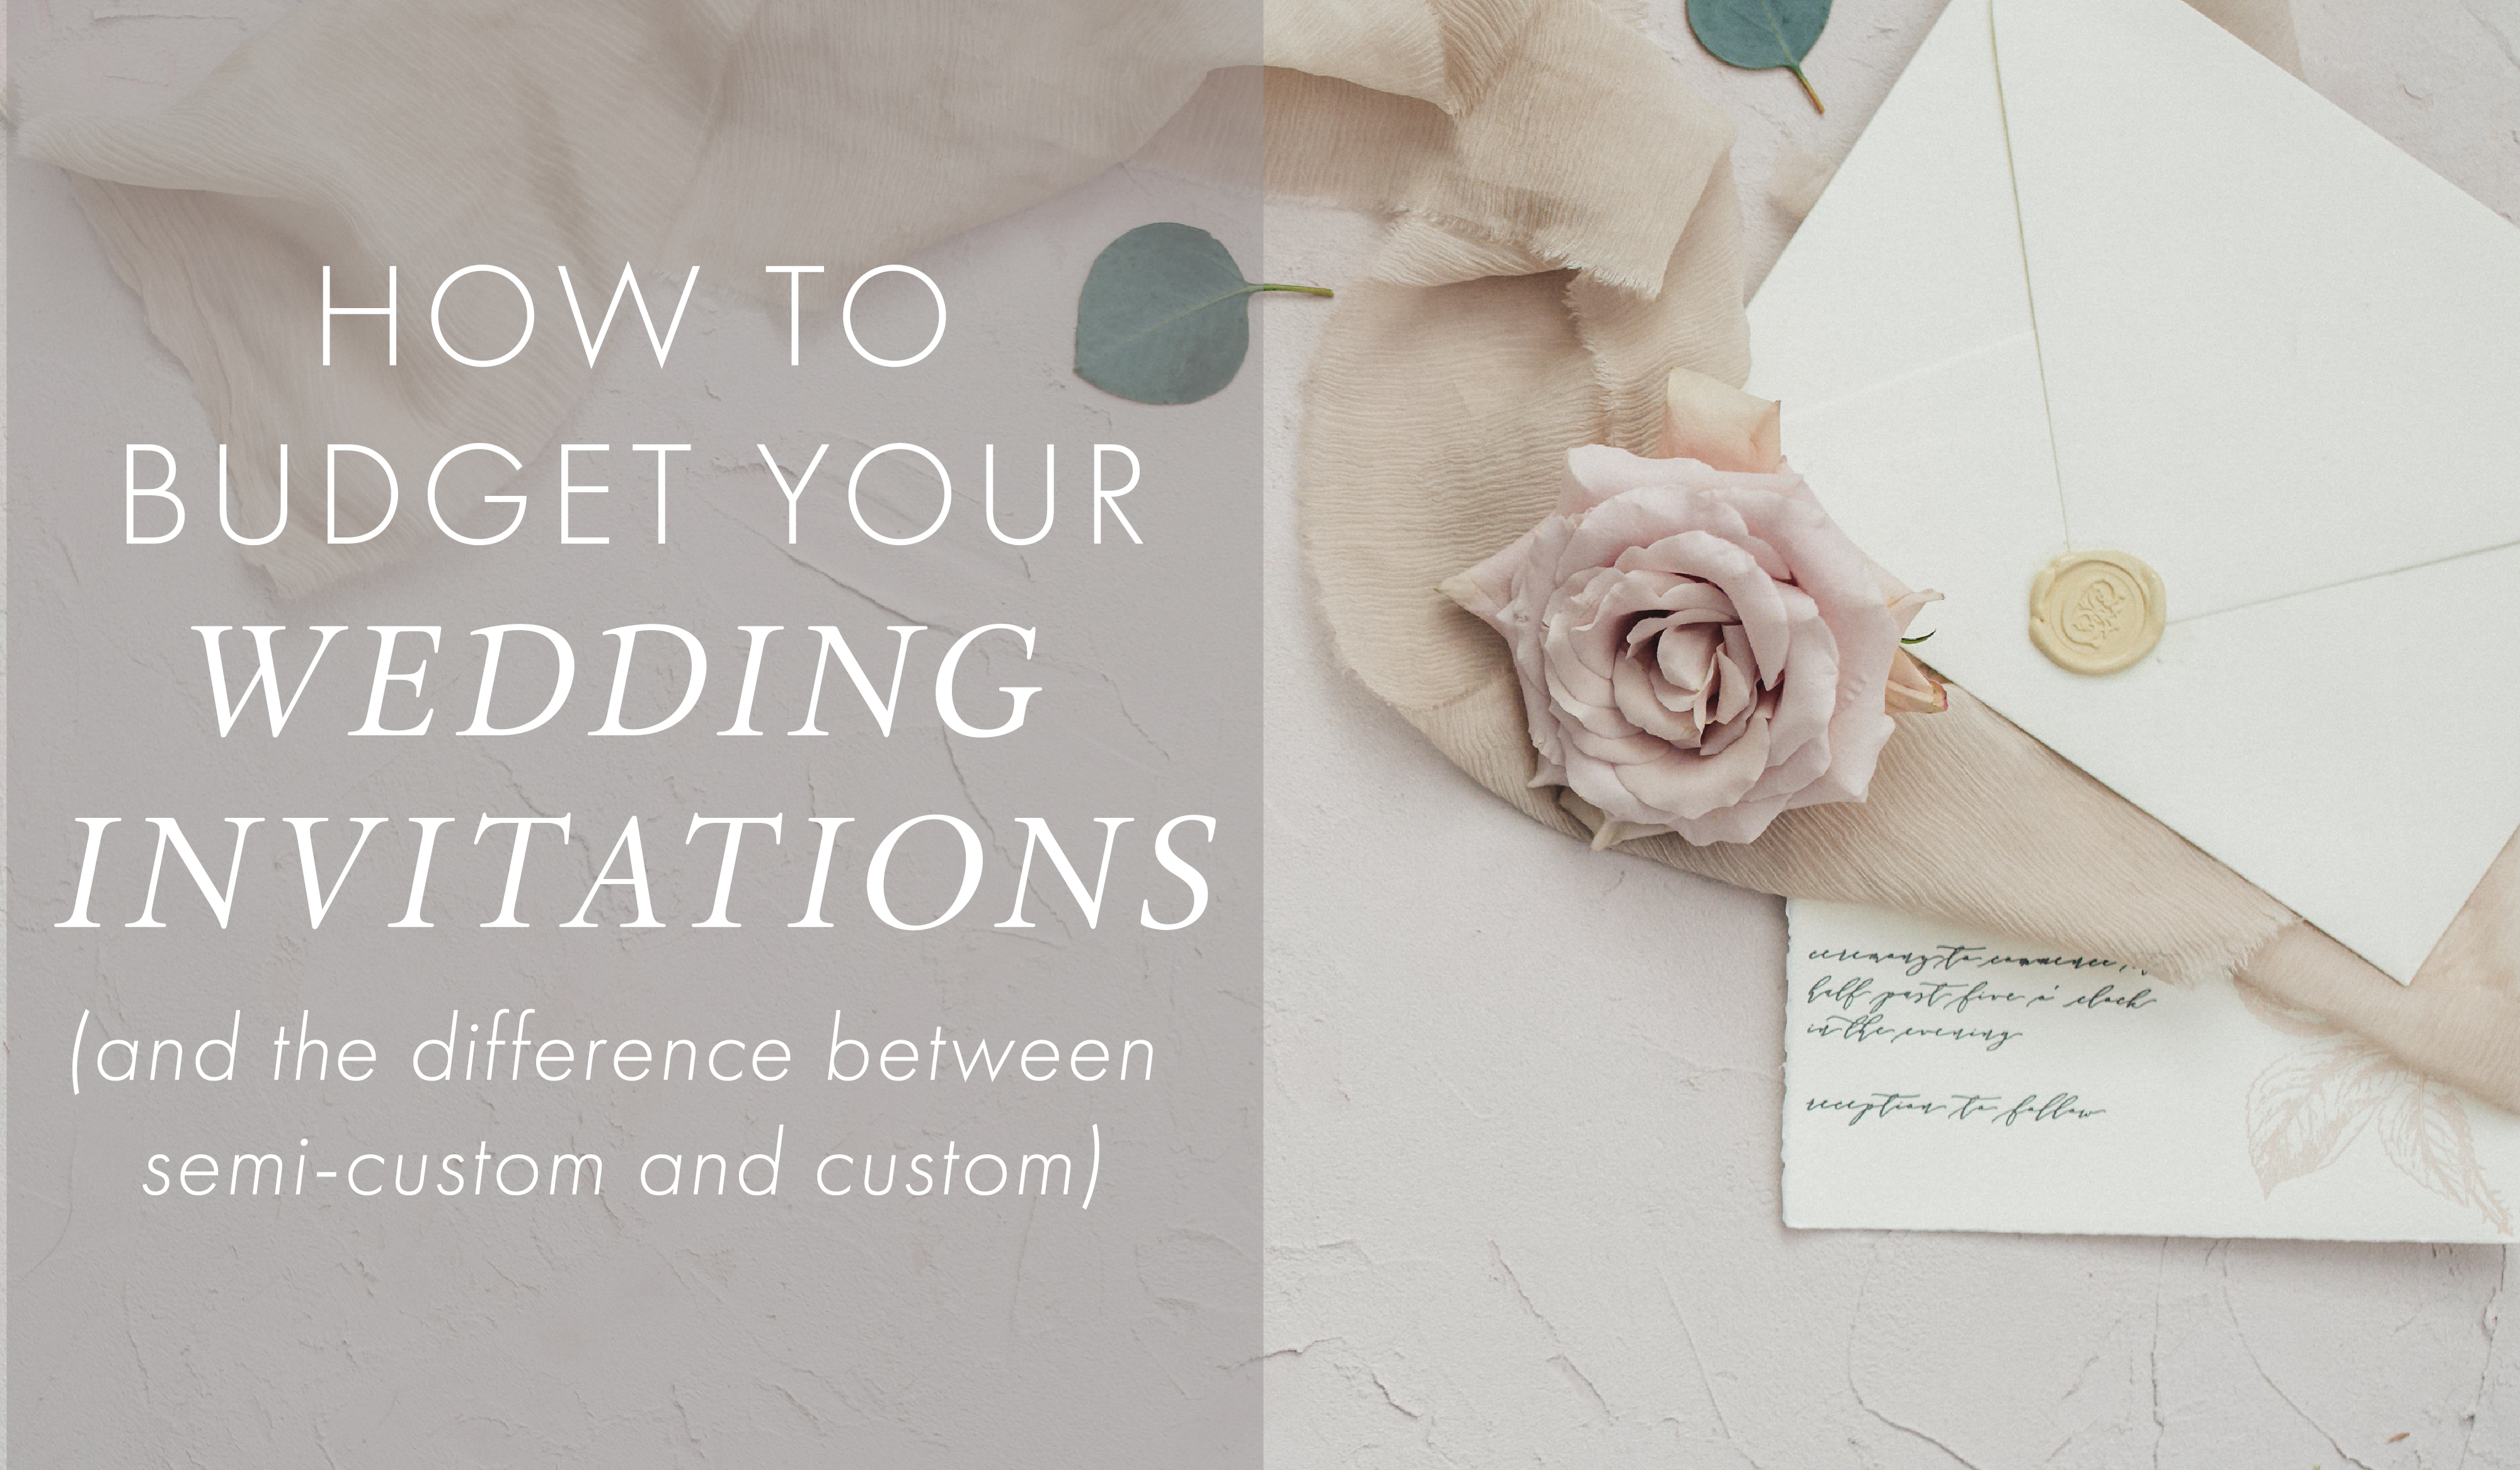 How to Budget Your Wedding Invitations